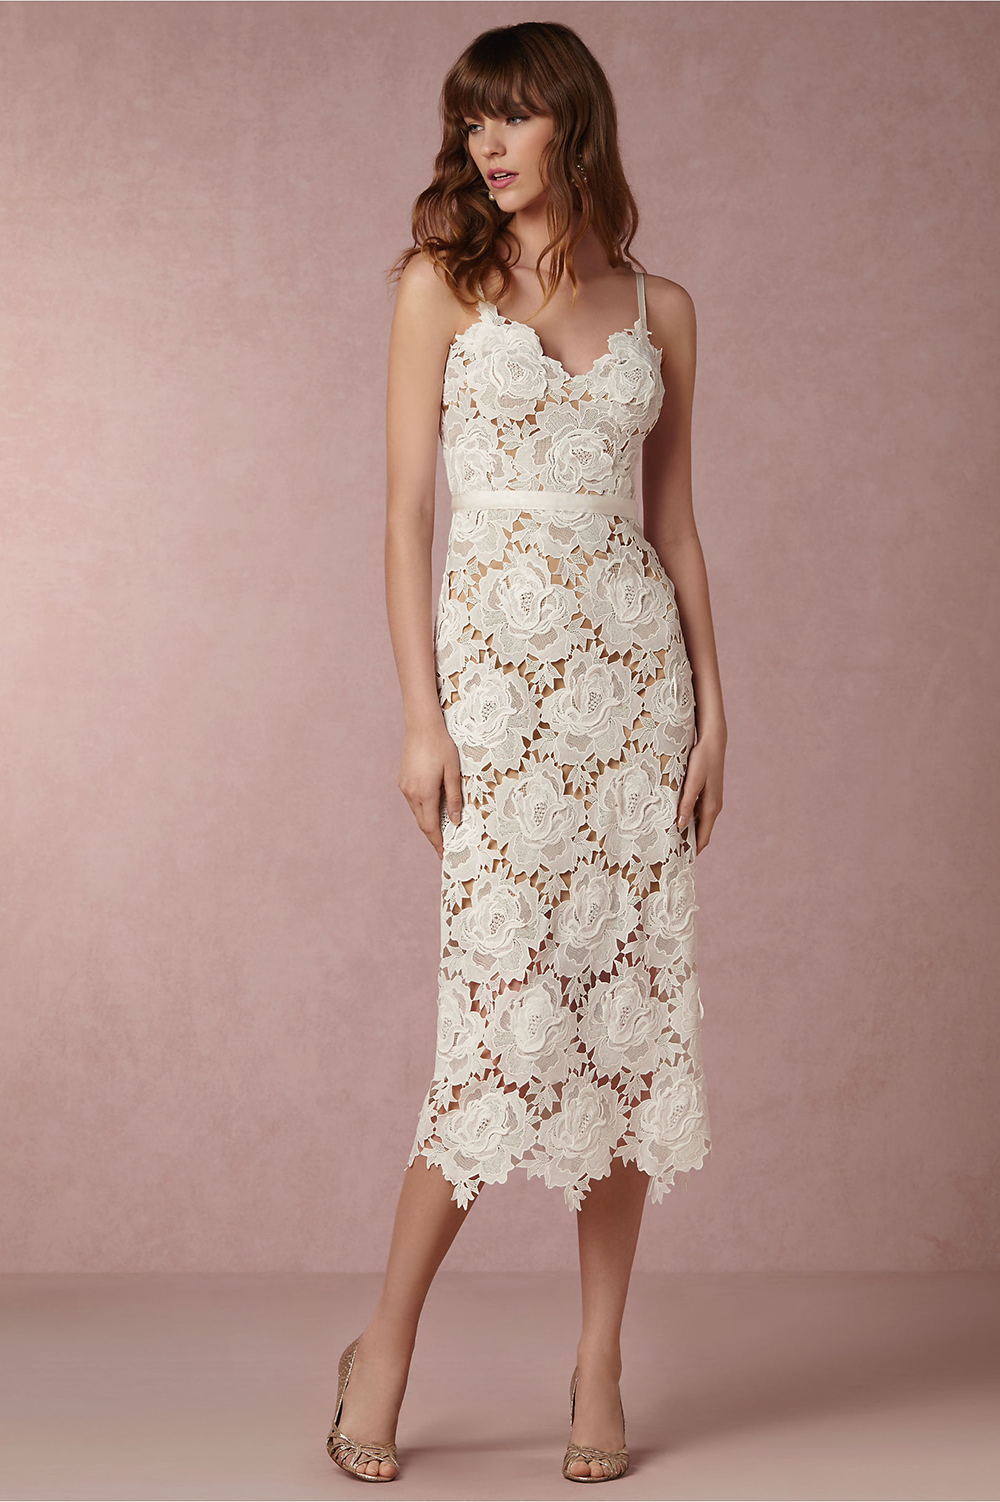 Fancy Friday - BHLDN Wedding Gowns